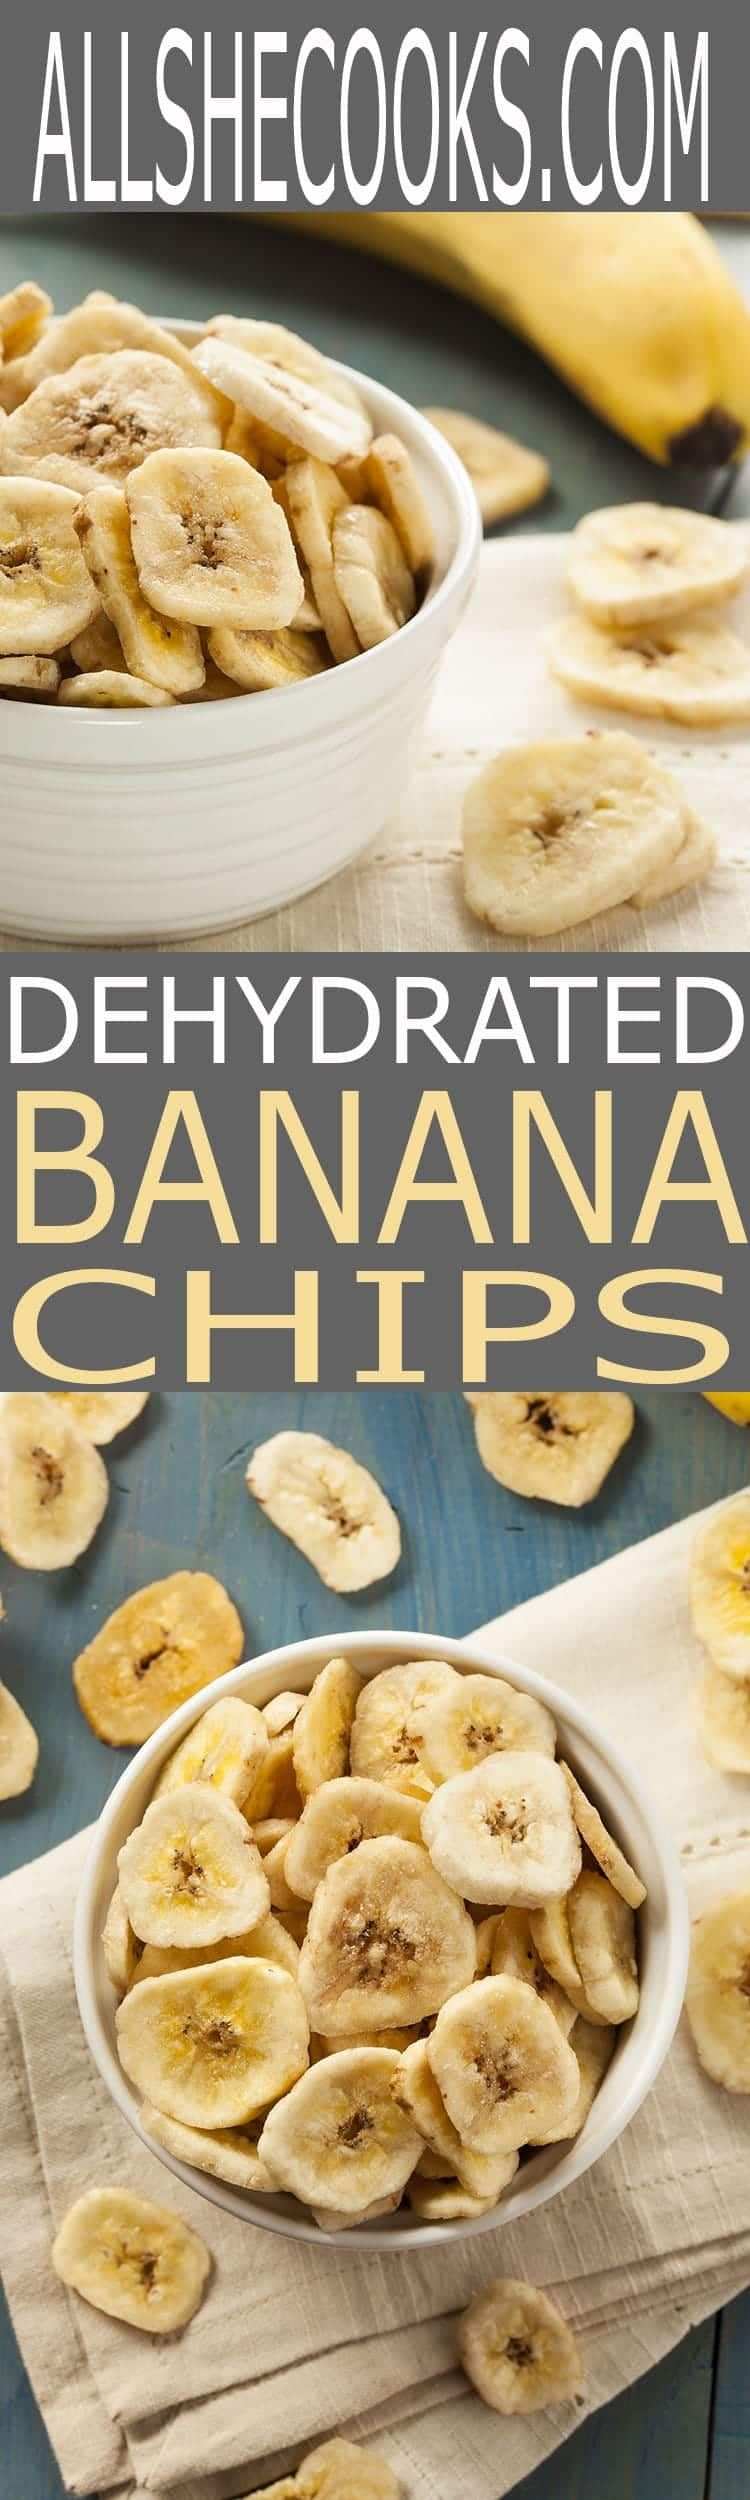 Dehydrated Banana Chips are easy to make at home with or